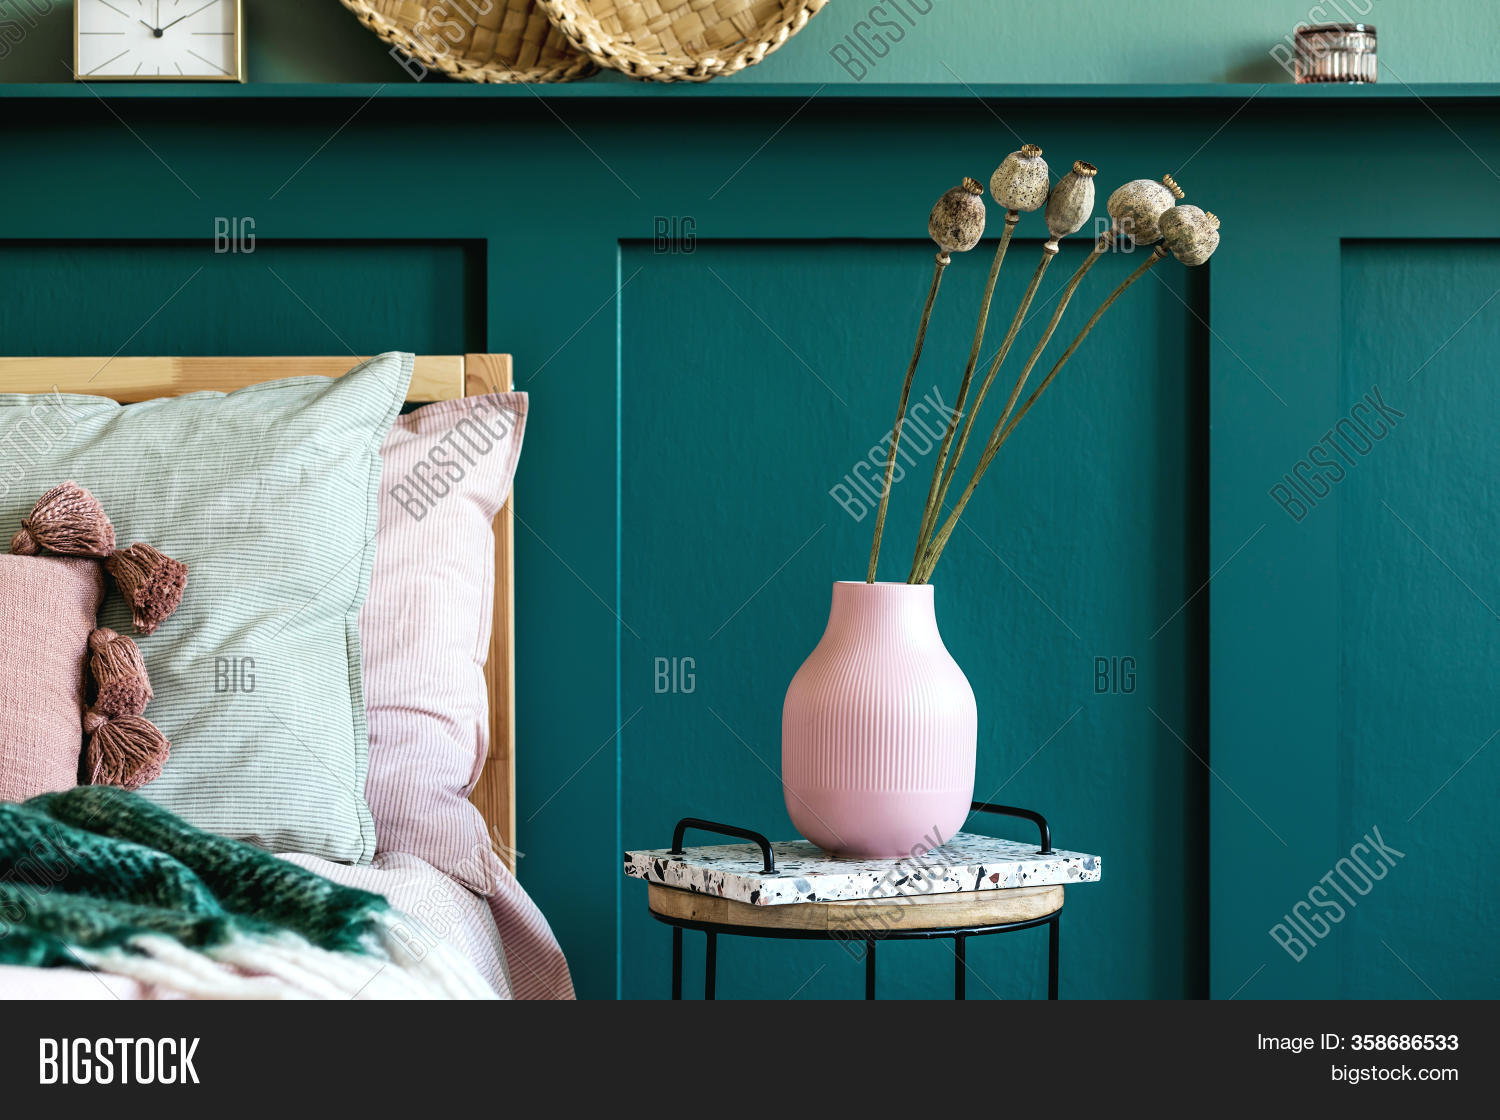 Stylish Composition Image Photo Free Trial Bigstock